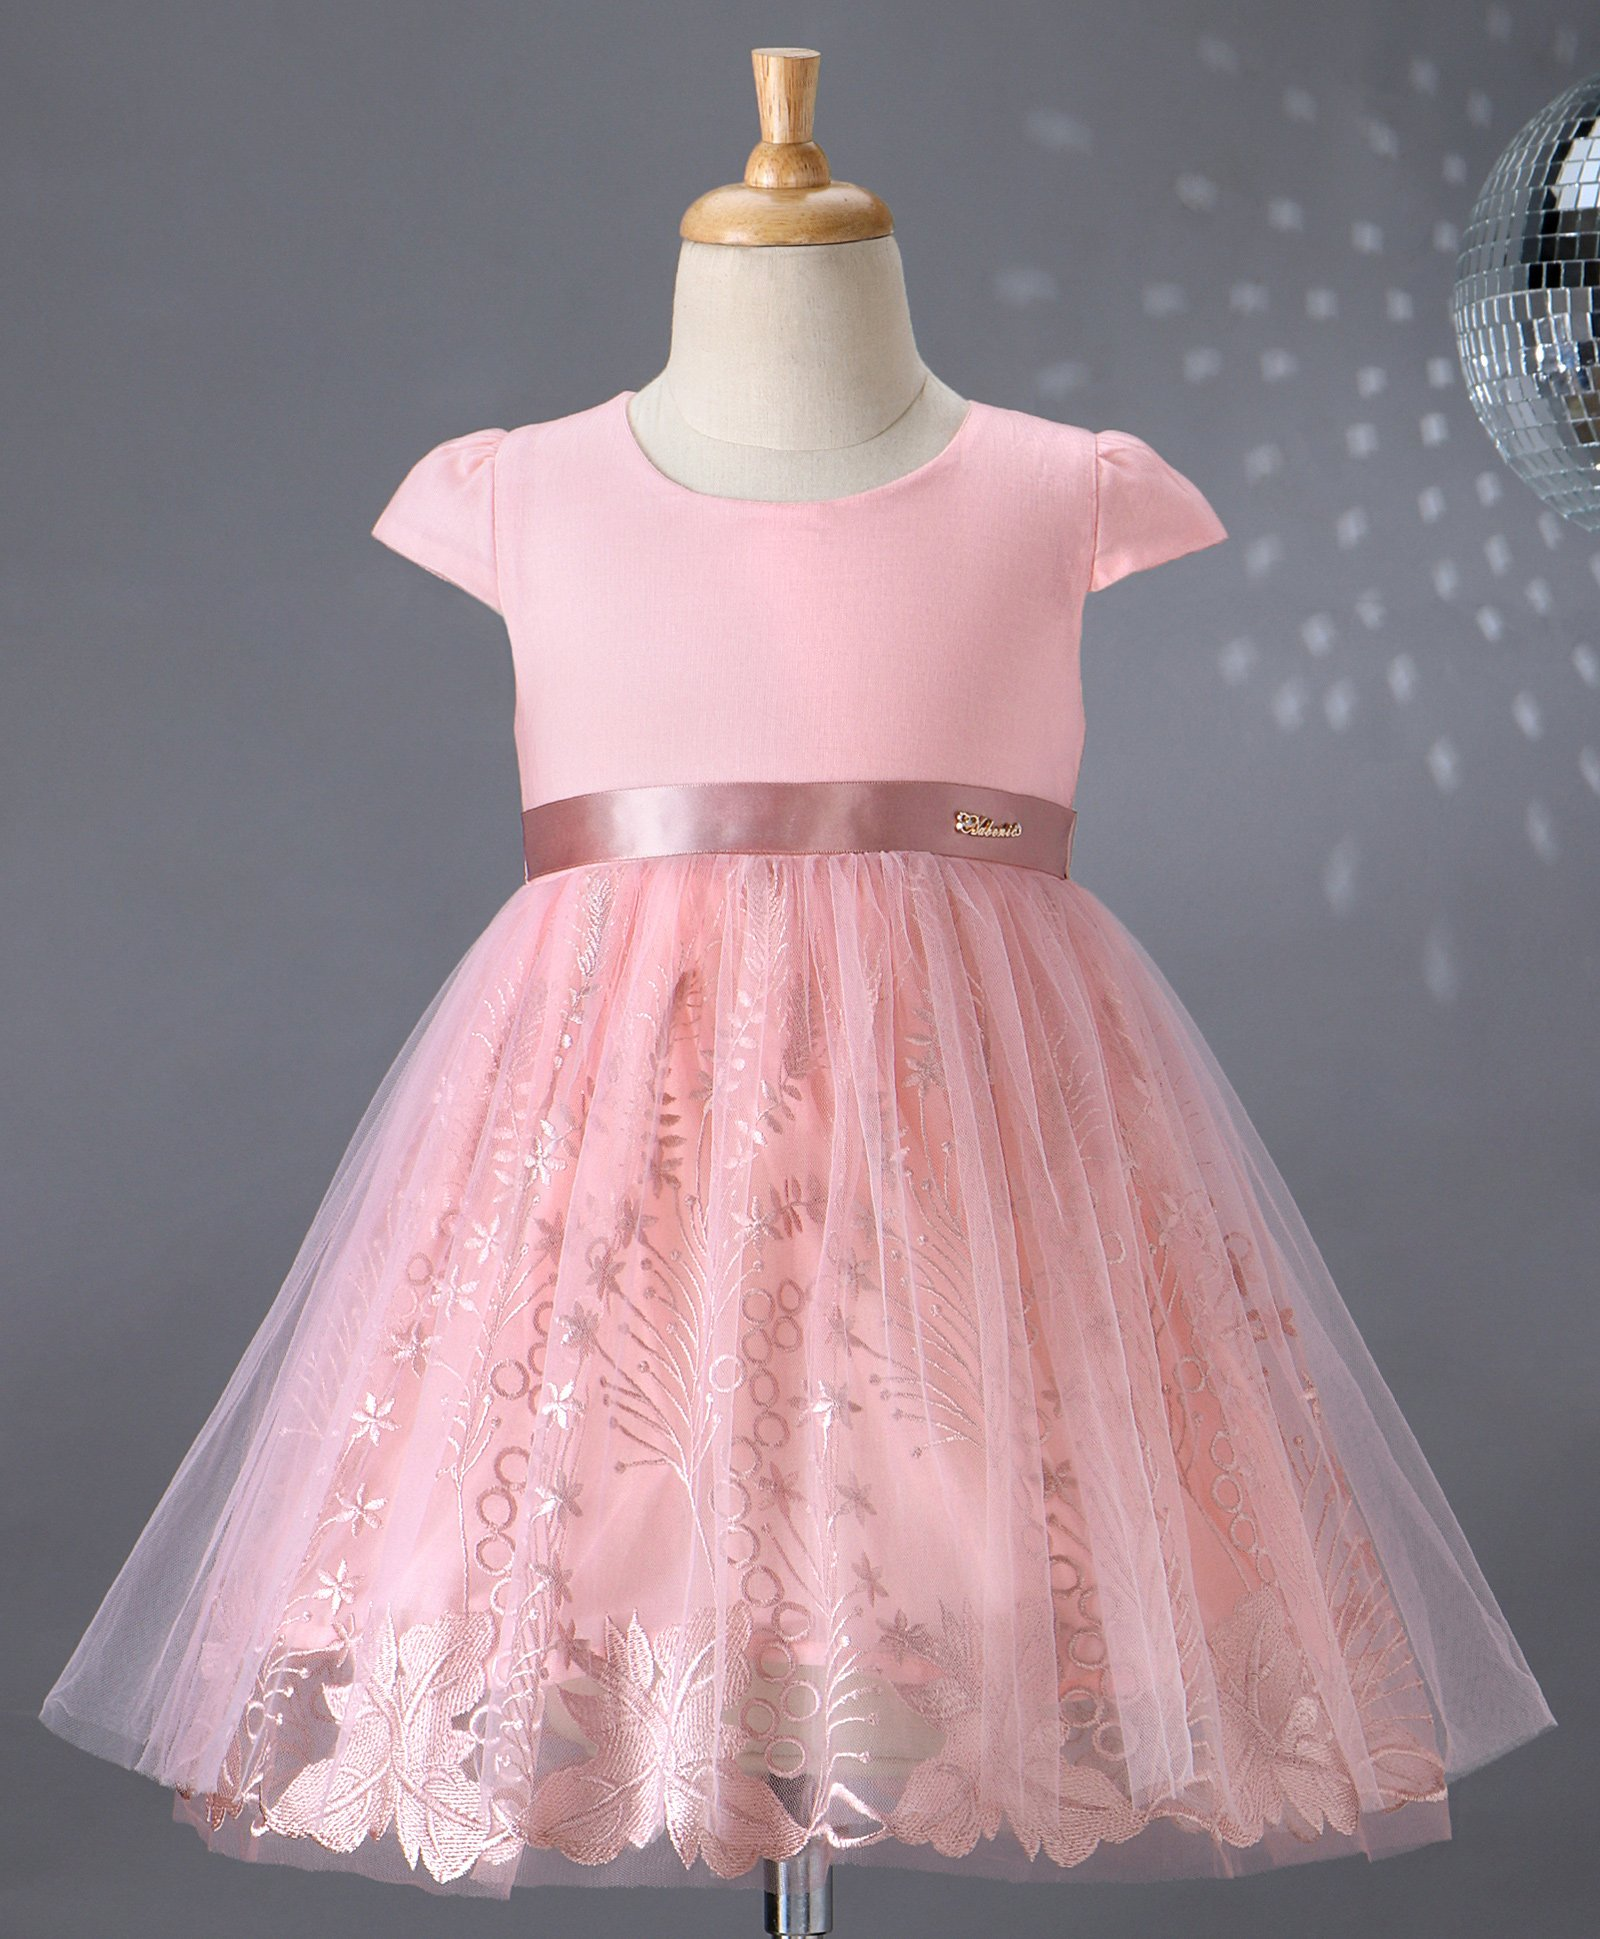 Dresses Baby Creative Girls Pink And Cream A-line Dress 24months